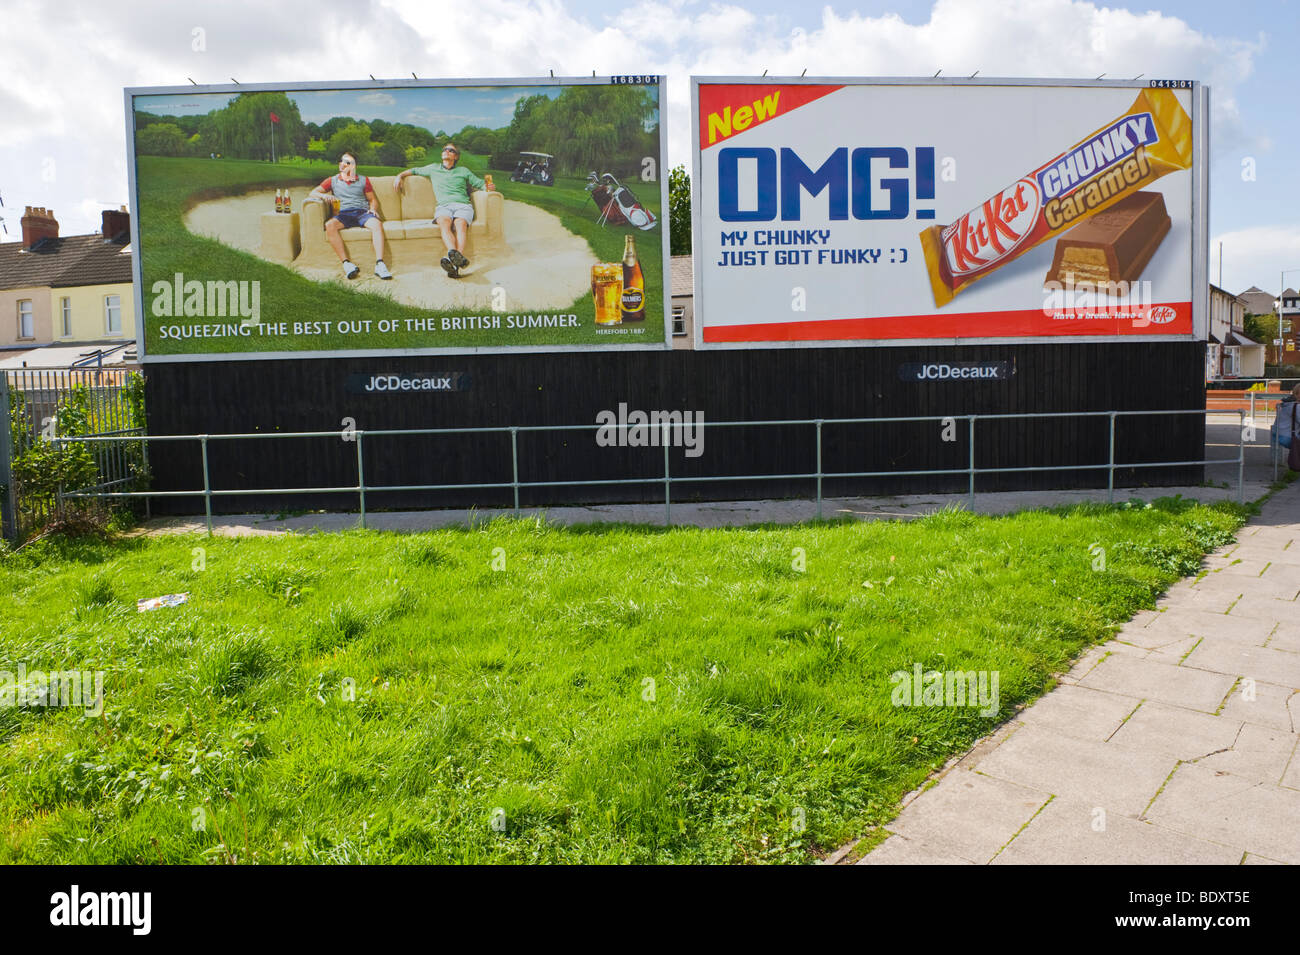 JC Decaux billboards for Bulmers Cider and Kit Kat in UK - Stock Image